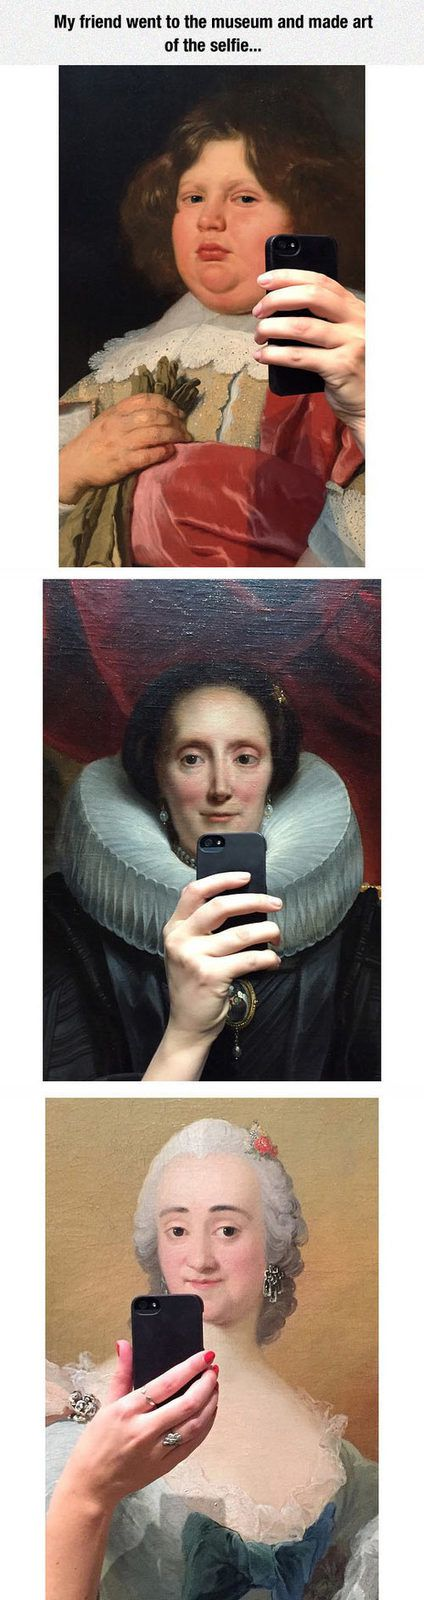 Art with Selfie